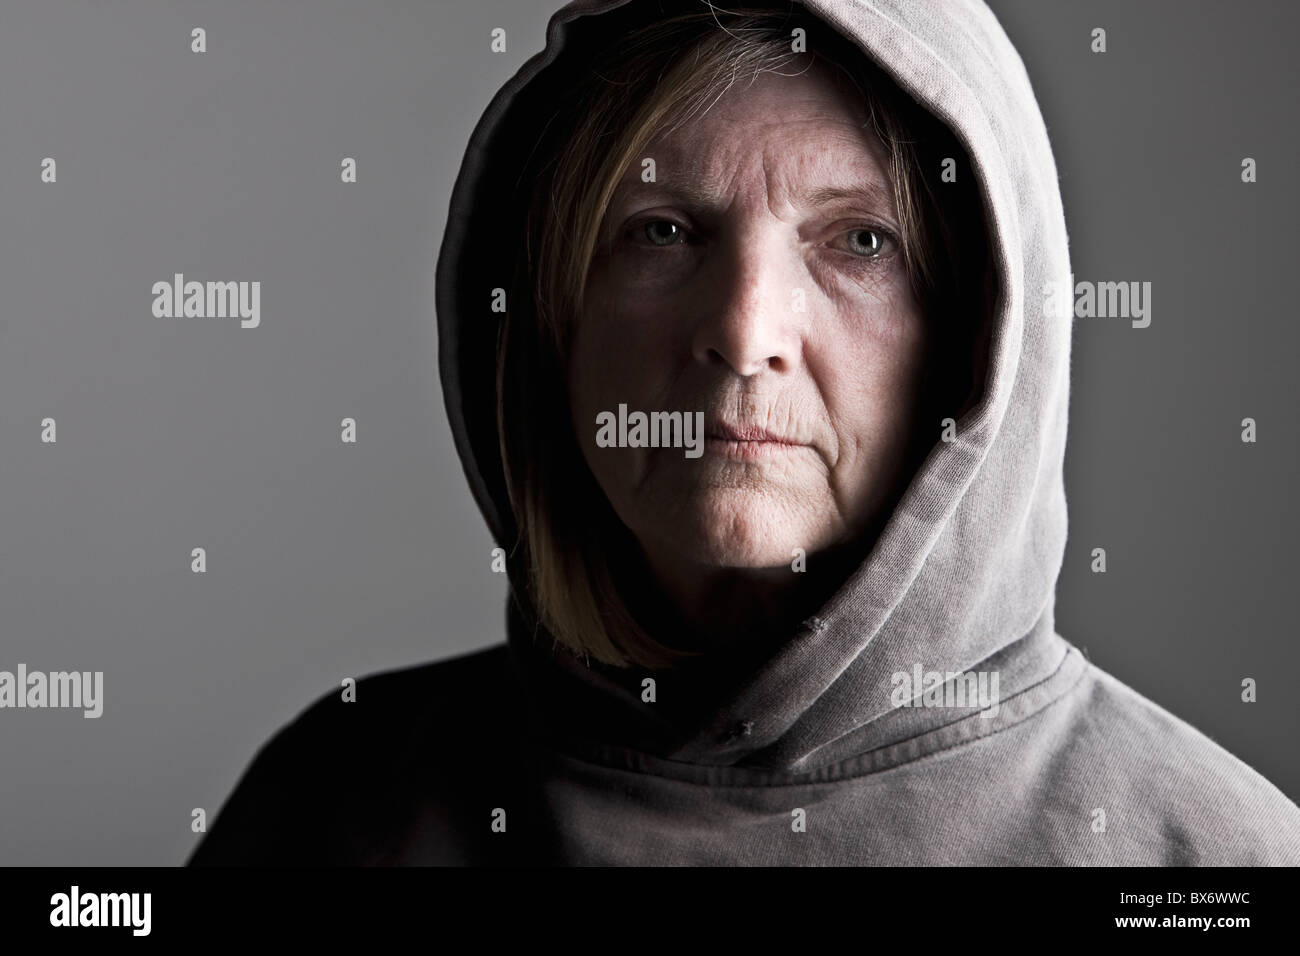 Shot of a Senior Lady in Hooded Top against Grey Background - Stock Image